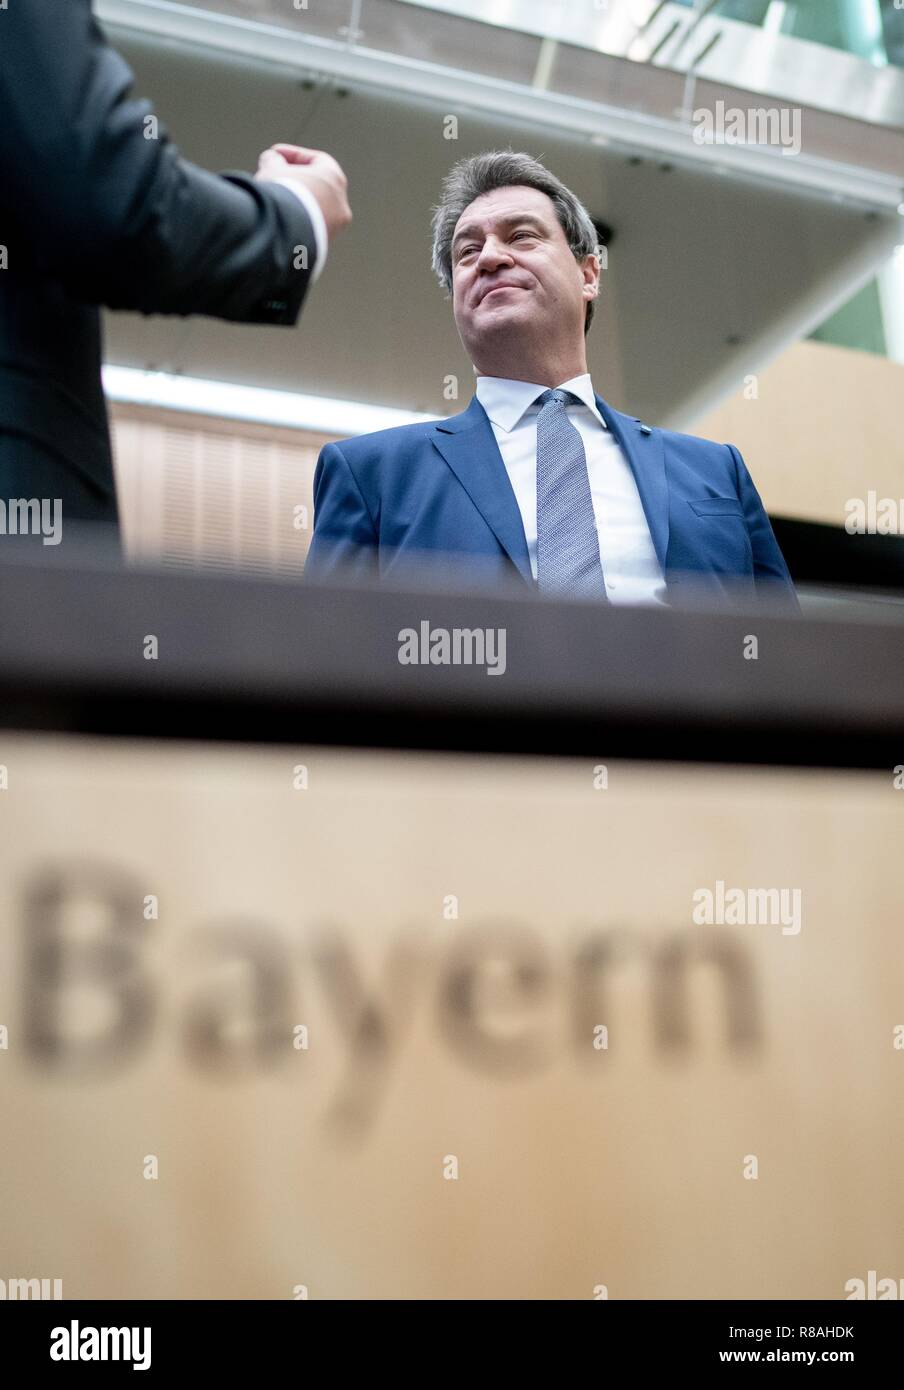 Berlin, Germany. 14th Dec, 2018. Markus Söder (CSU), Prime Minister of Bavaria, attends the meeting of the Bundesrat. In the last session of the year, the regional chamber finally deals with several laws of the grand coalition, including tightening the rent brake, more further training, higher nursing care contributions in 2019, postponement of the ban on anaesthetised piglet castration. Credit: Kay Nietfeld/dpa/Alamy Live News - Stock Image